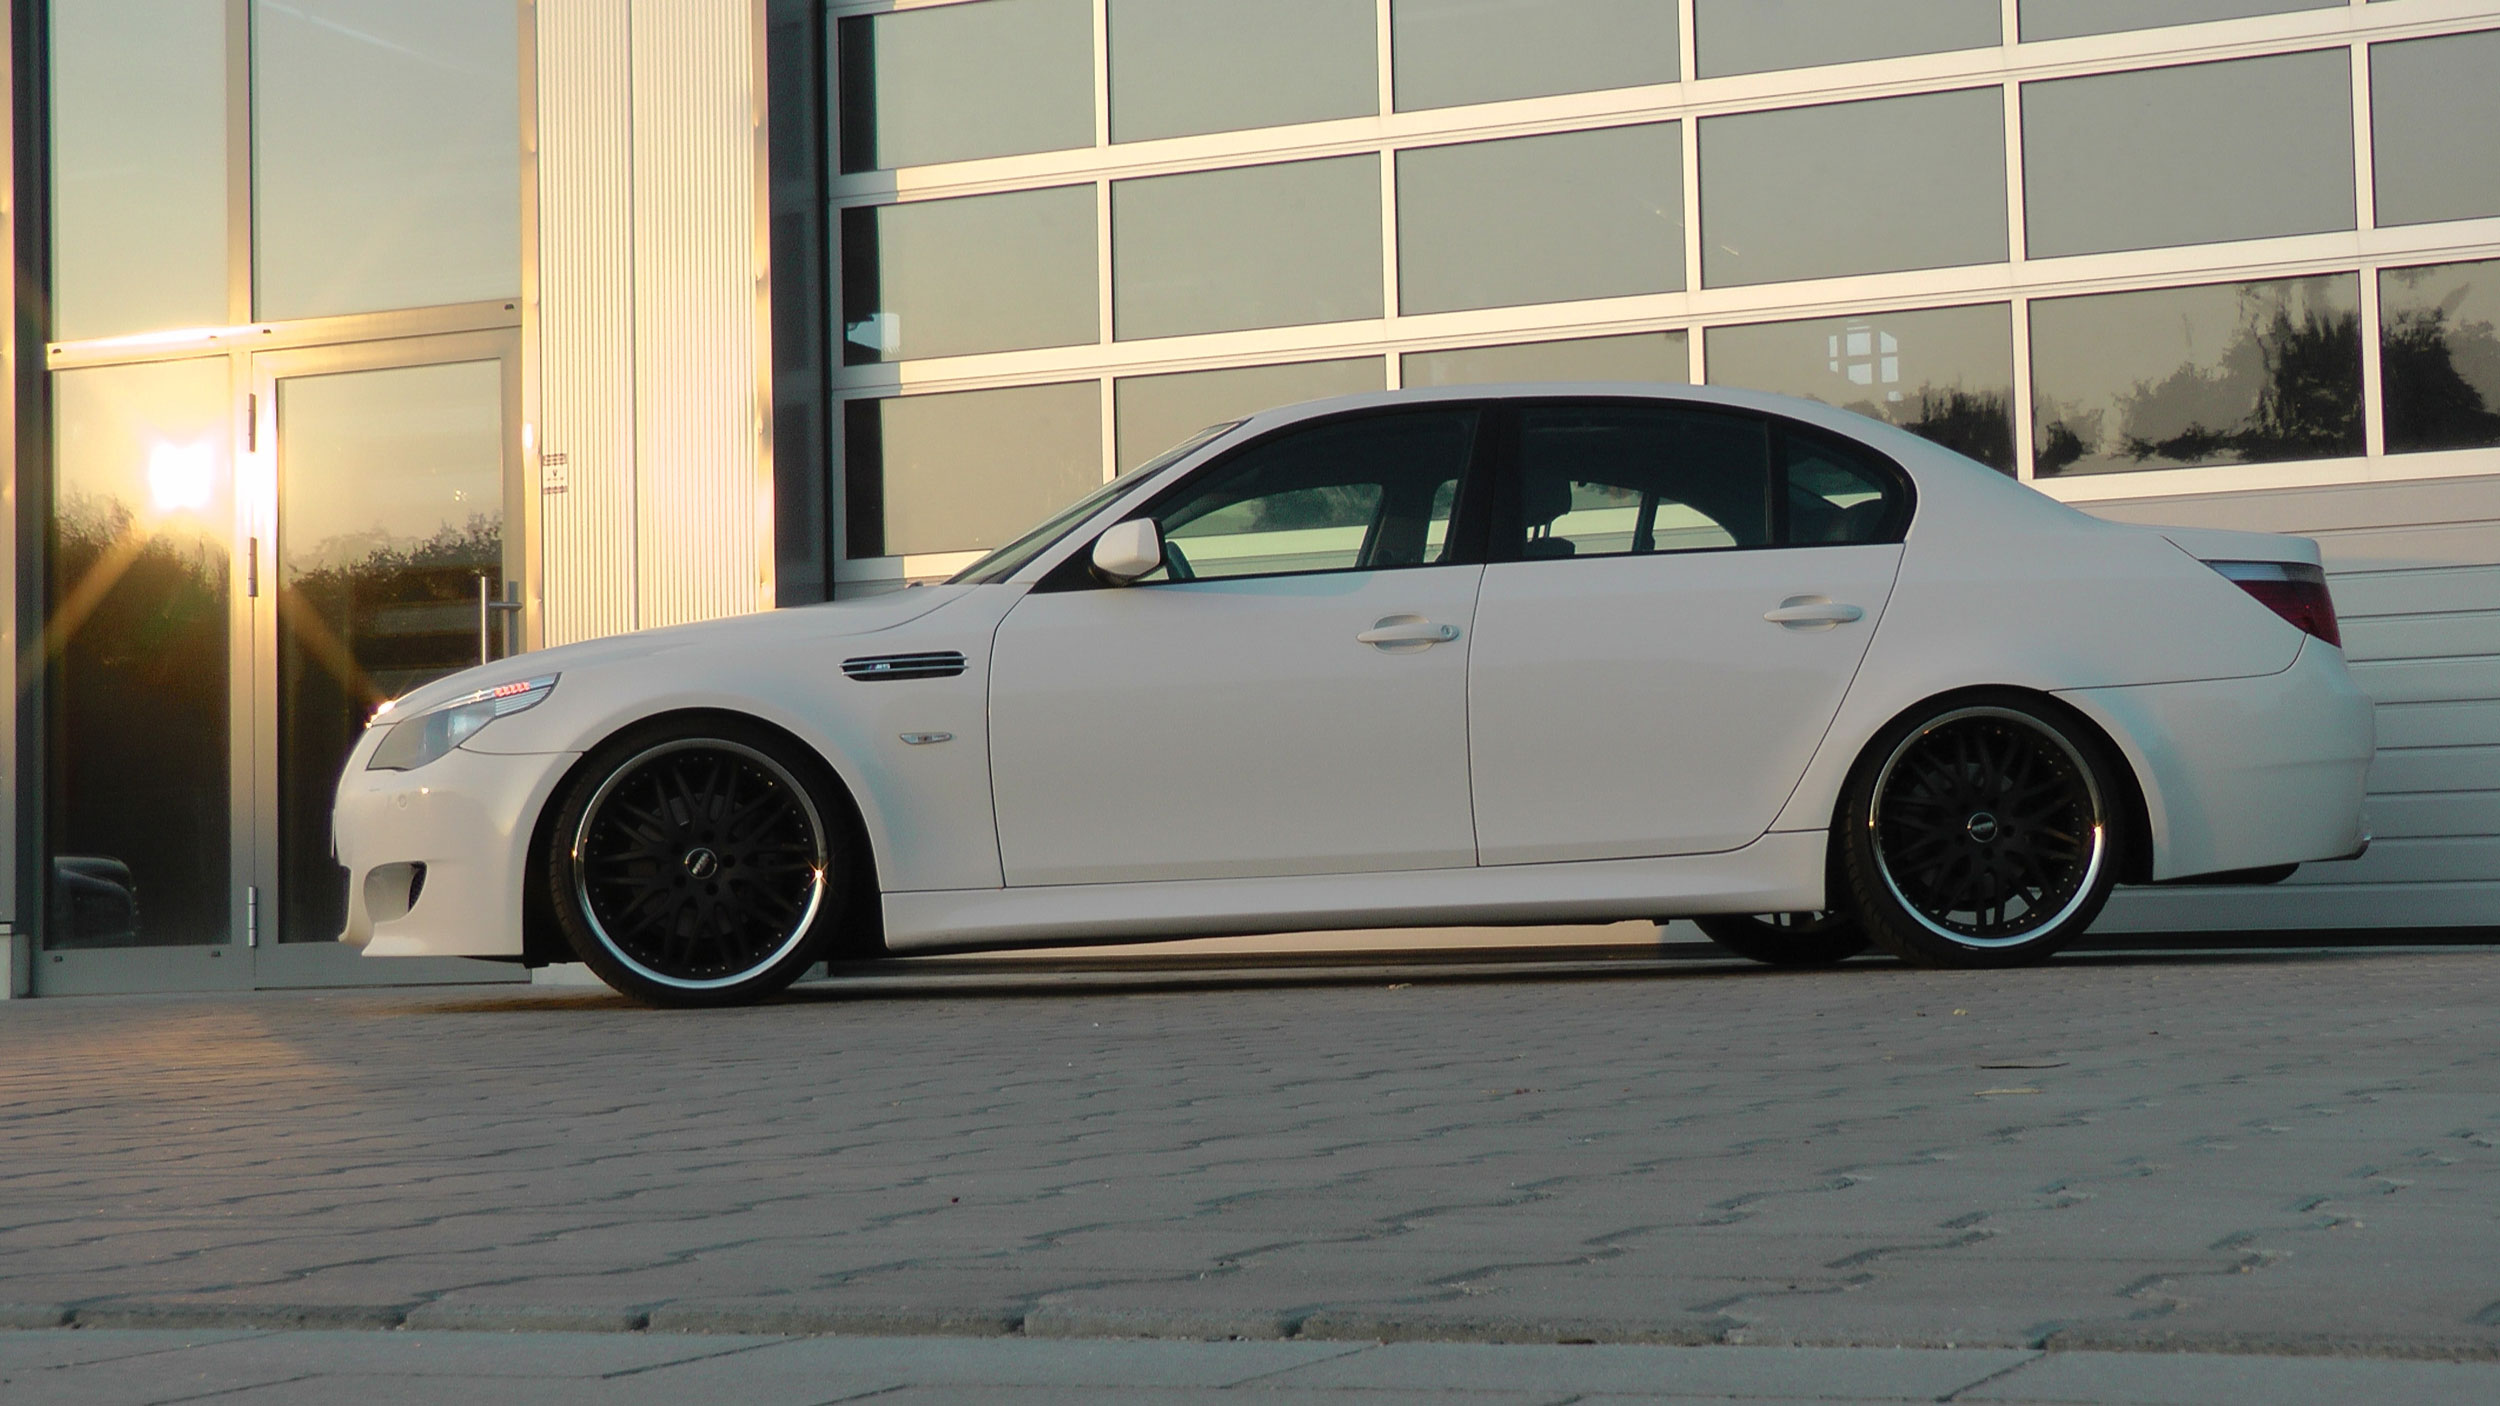 Bmw 5 Series E60m5 Limousine Tuning Pd M5 Style Aerodynamic Kit